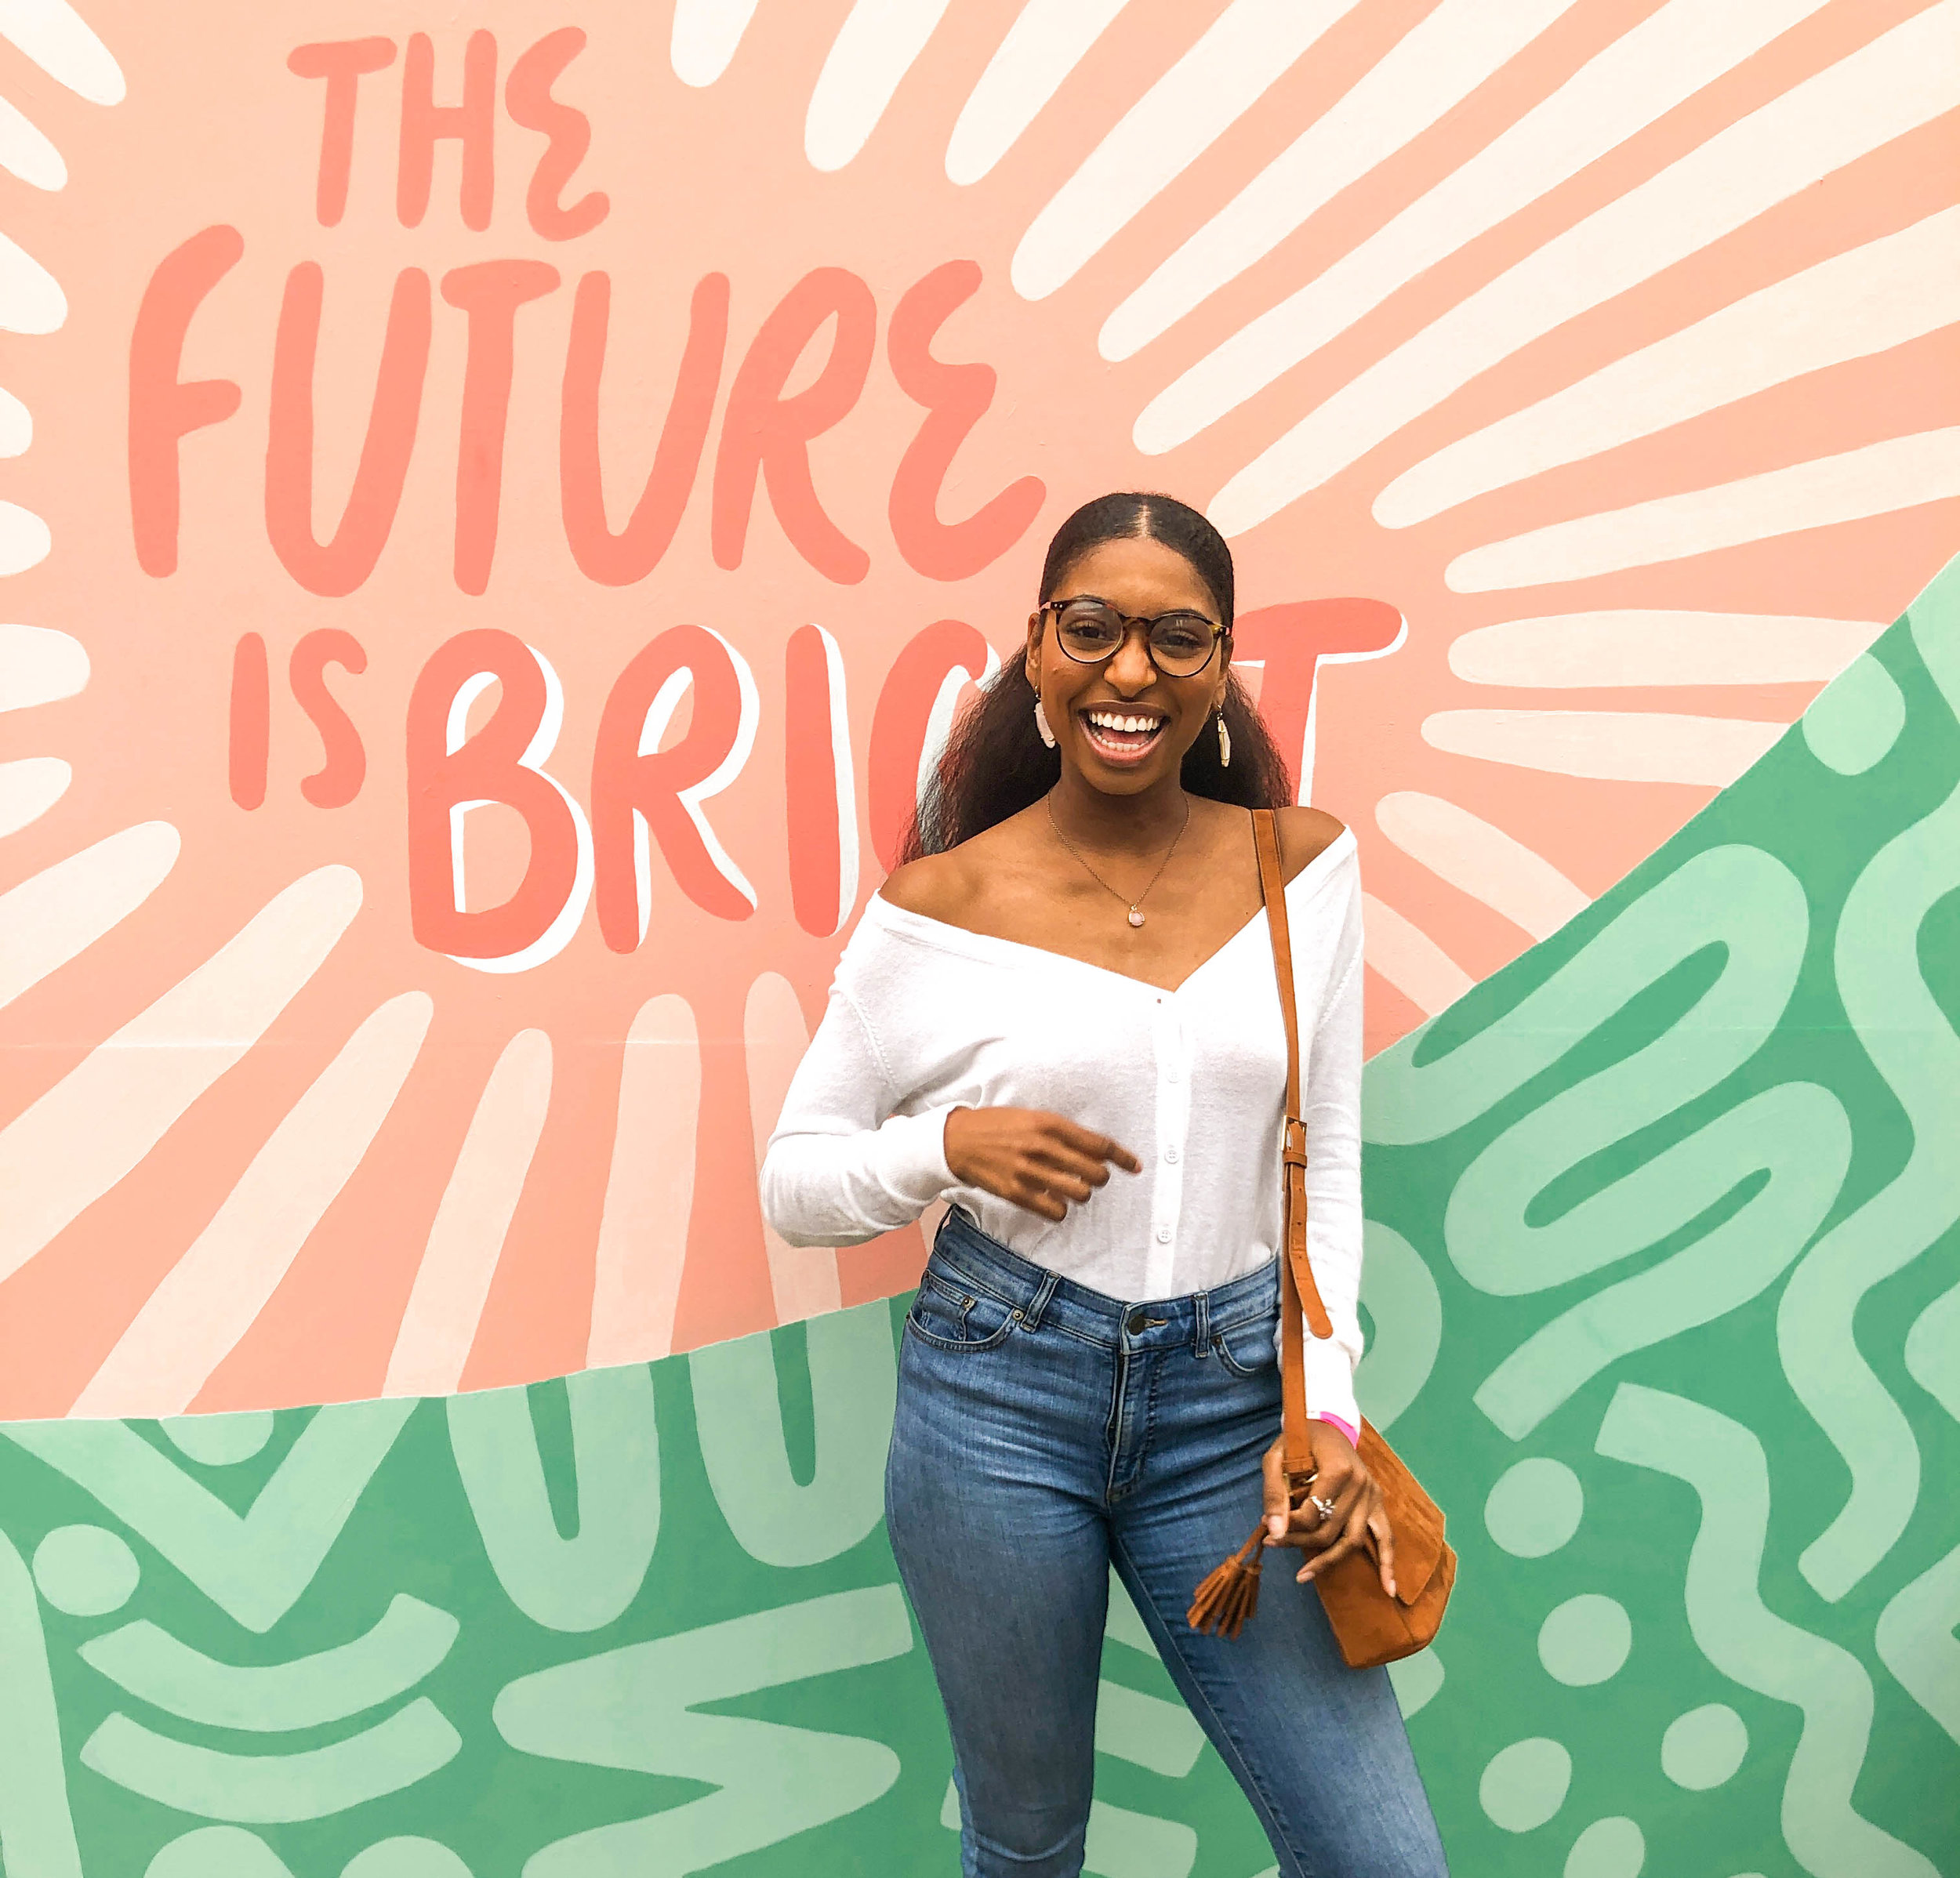 I WENT TO A GIRL BOSS CONFERENCE IN AUSTIN - Category: Career & WorkRead Time: 8 minutes